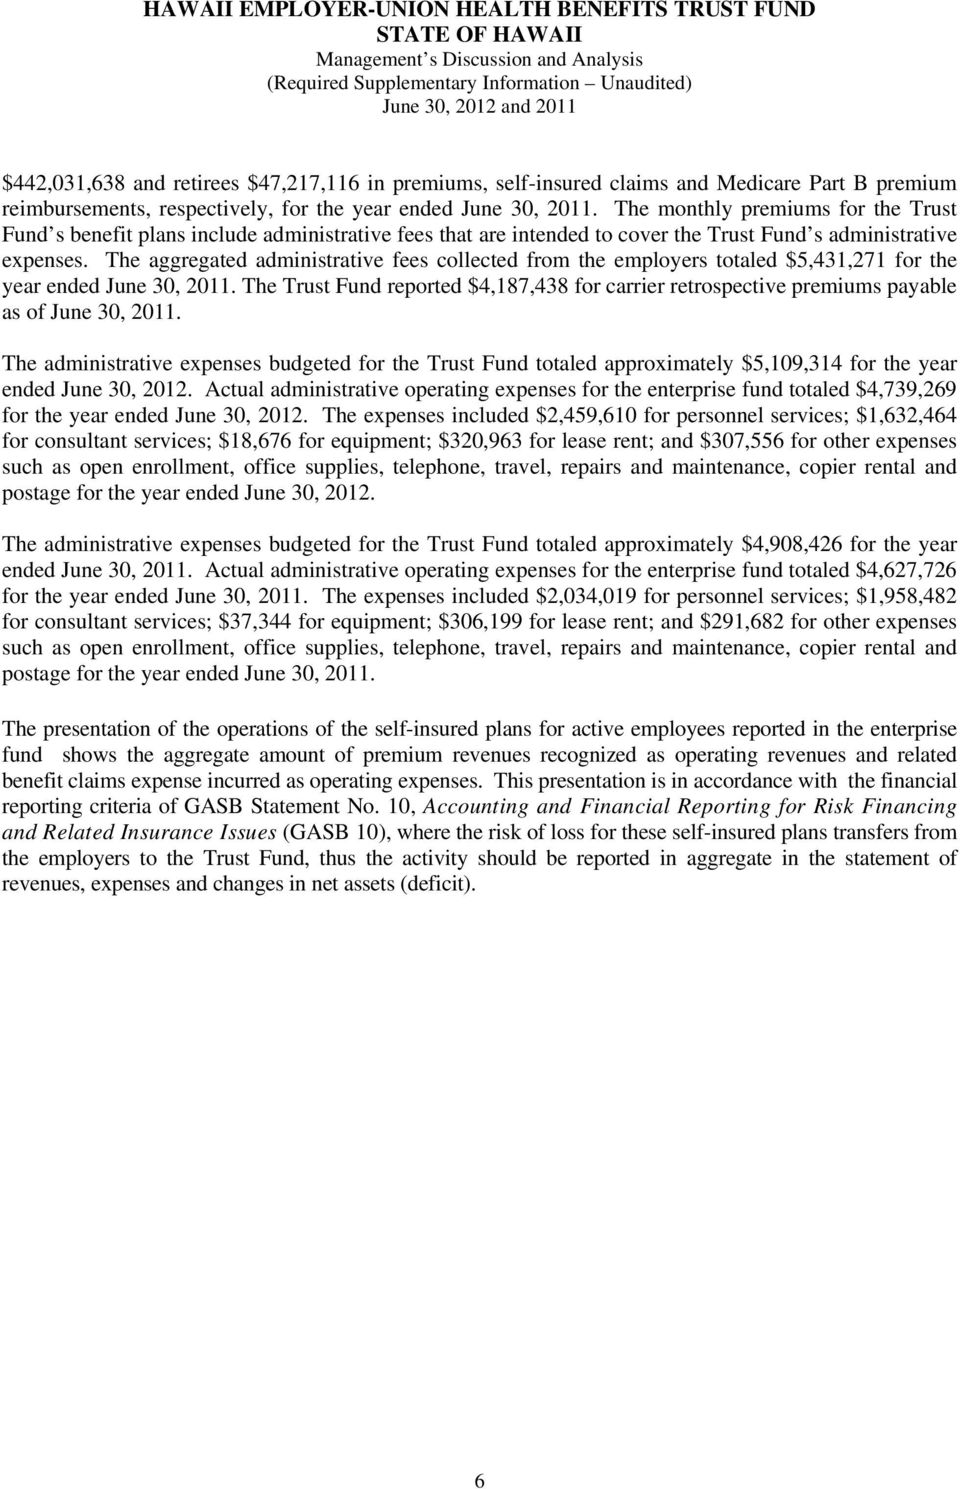 The aggregated administrative fees collected from the employers totaled $5,431,271 for the year ended June 30, 2011.